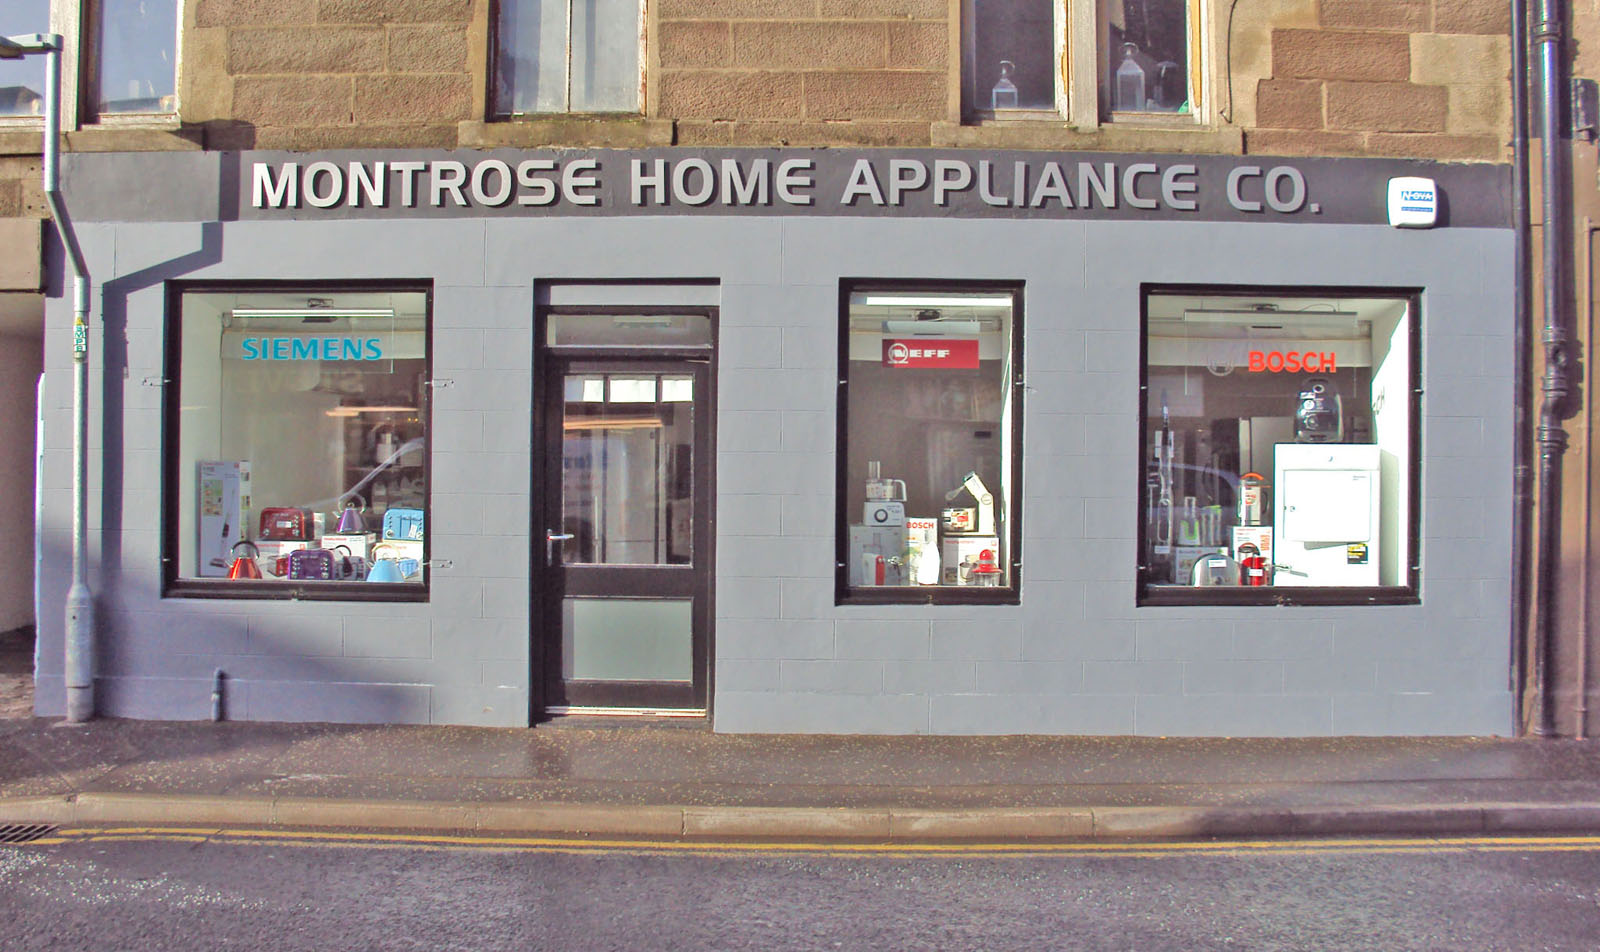 Montrose Home Appliance Company